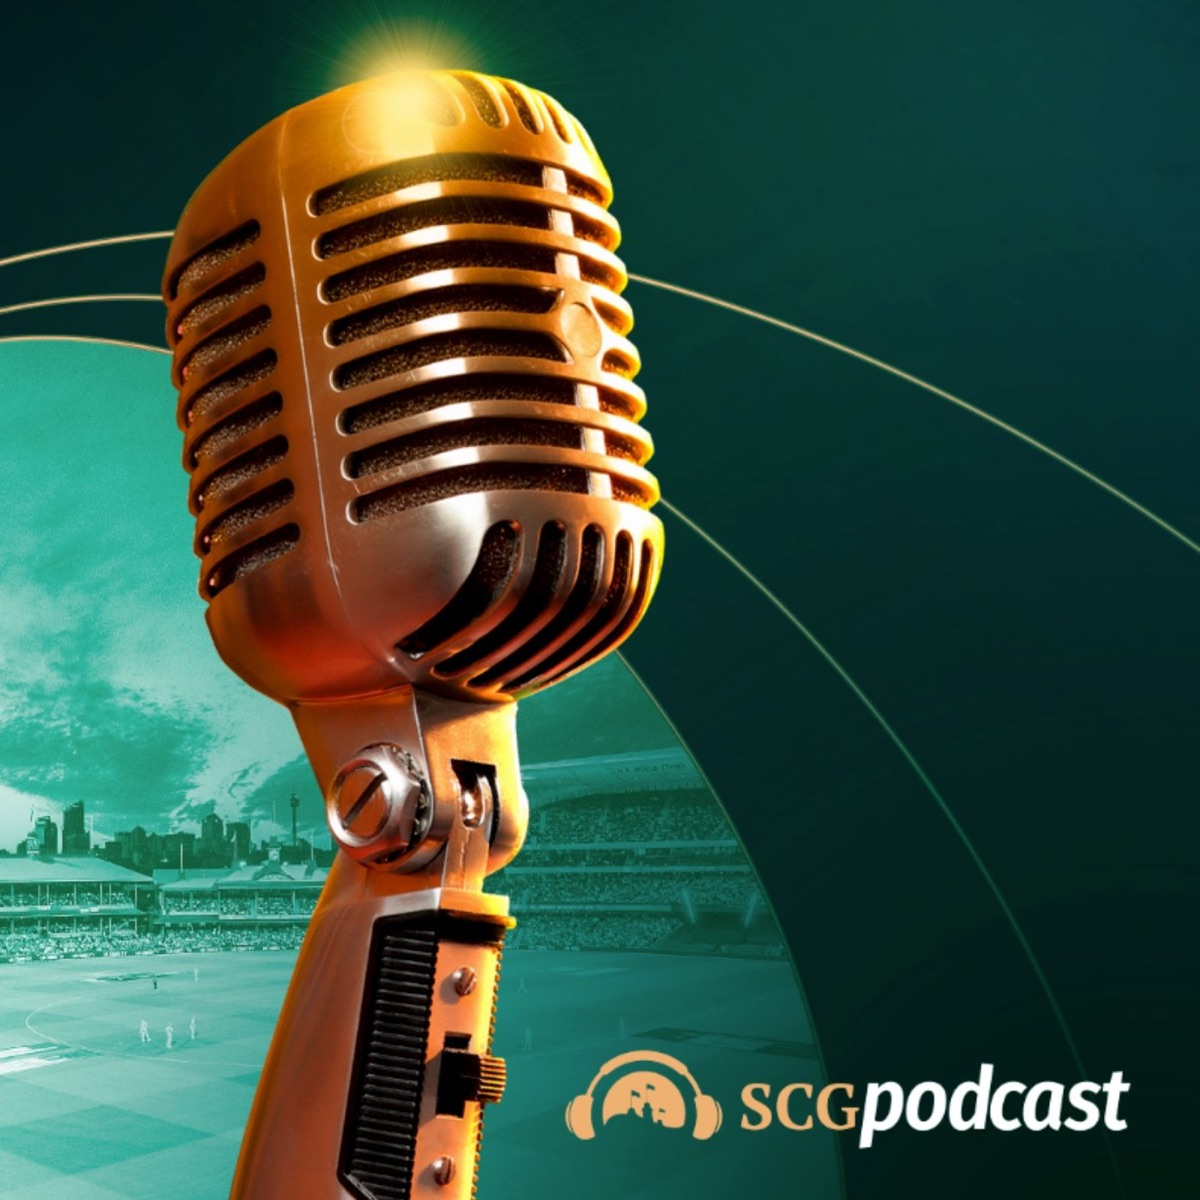 SCG Podcast